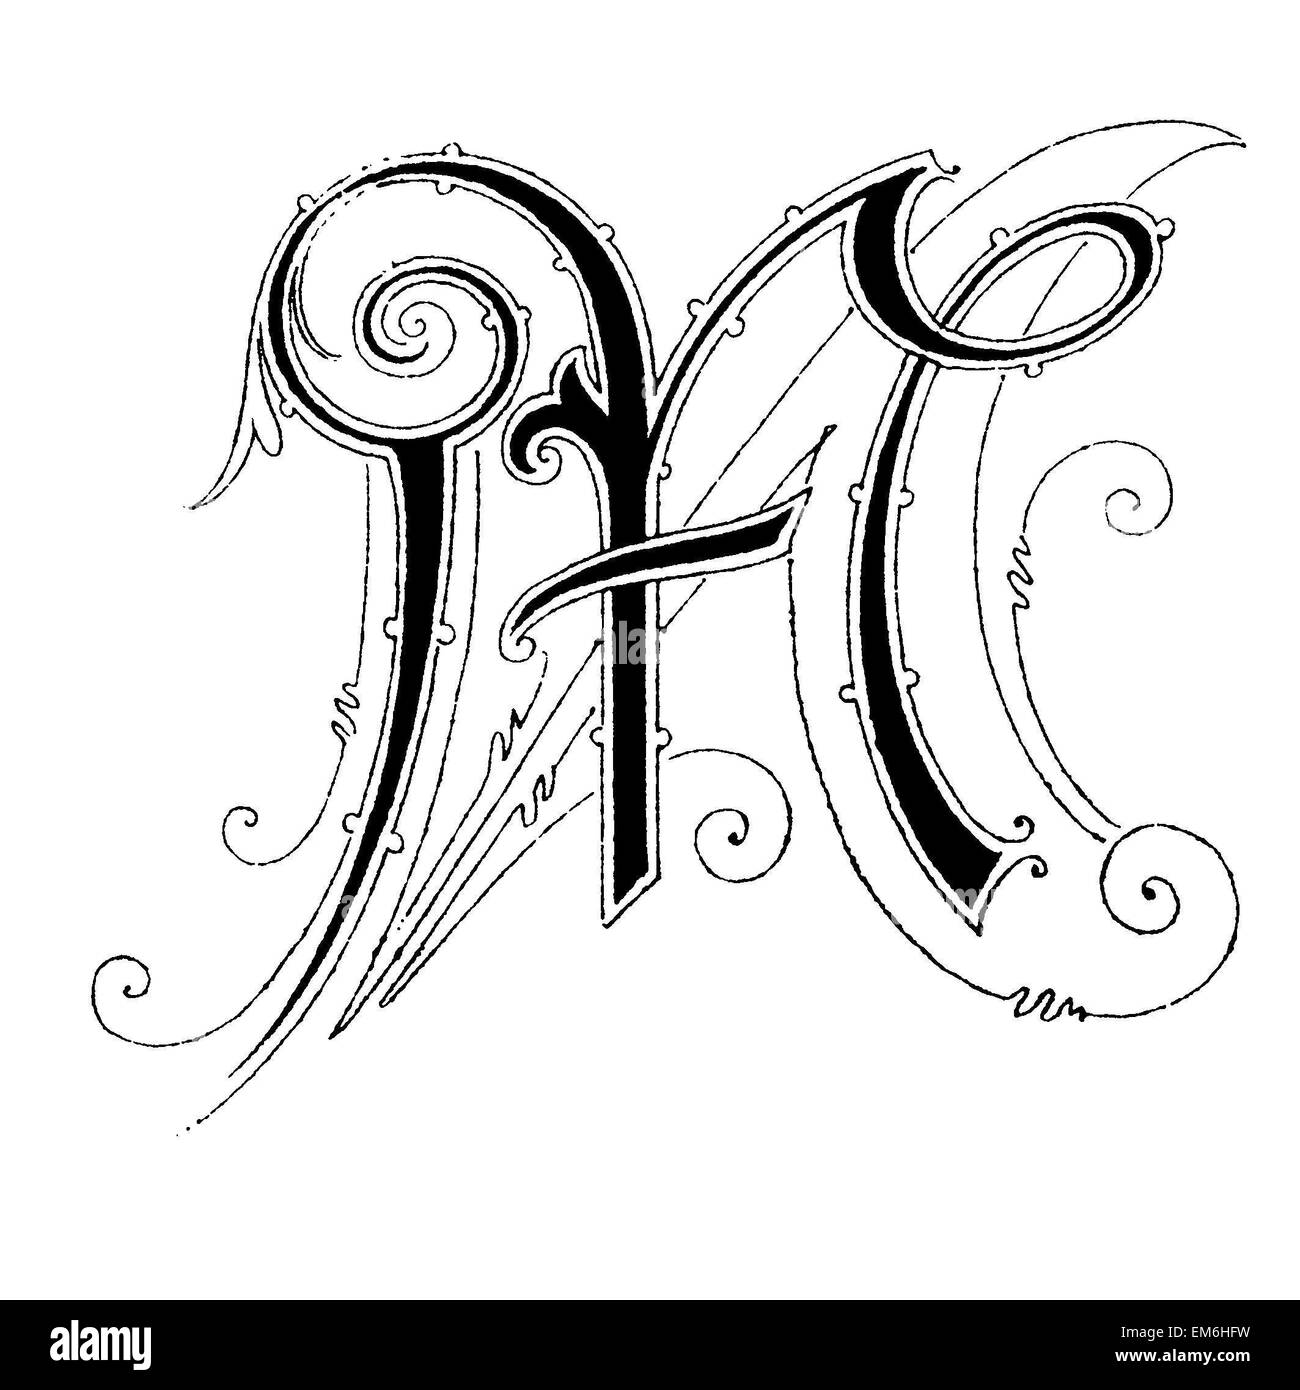 Letter M Font Art Nouveau Stock Photo 81280077 Alamy